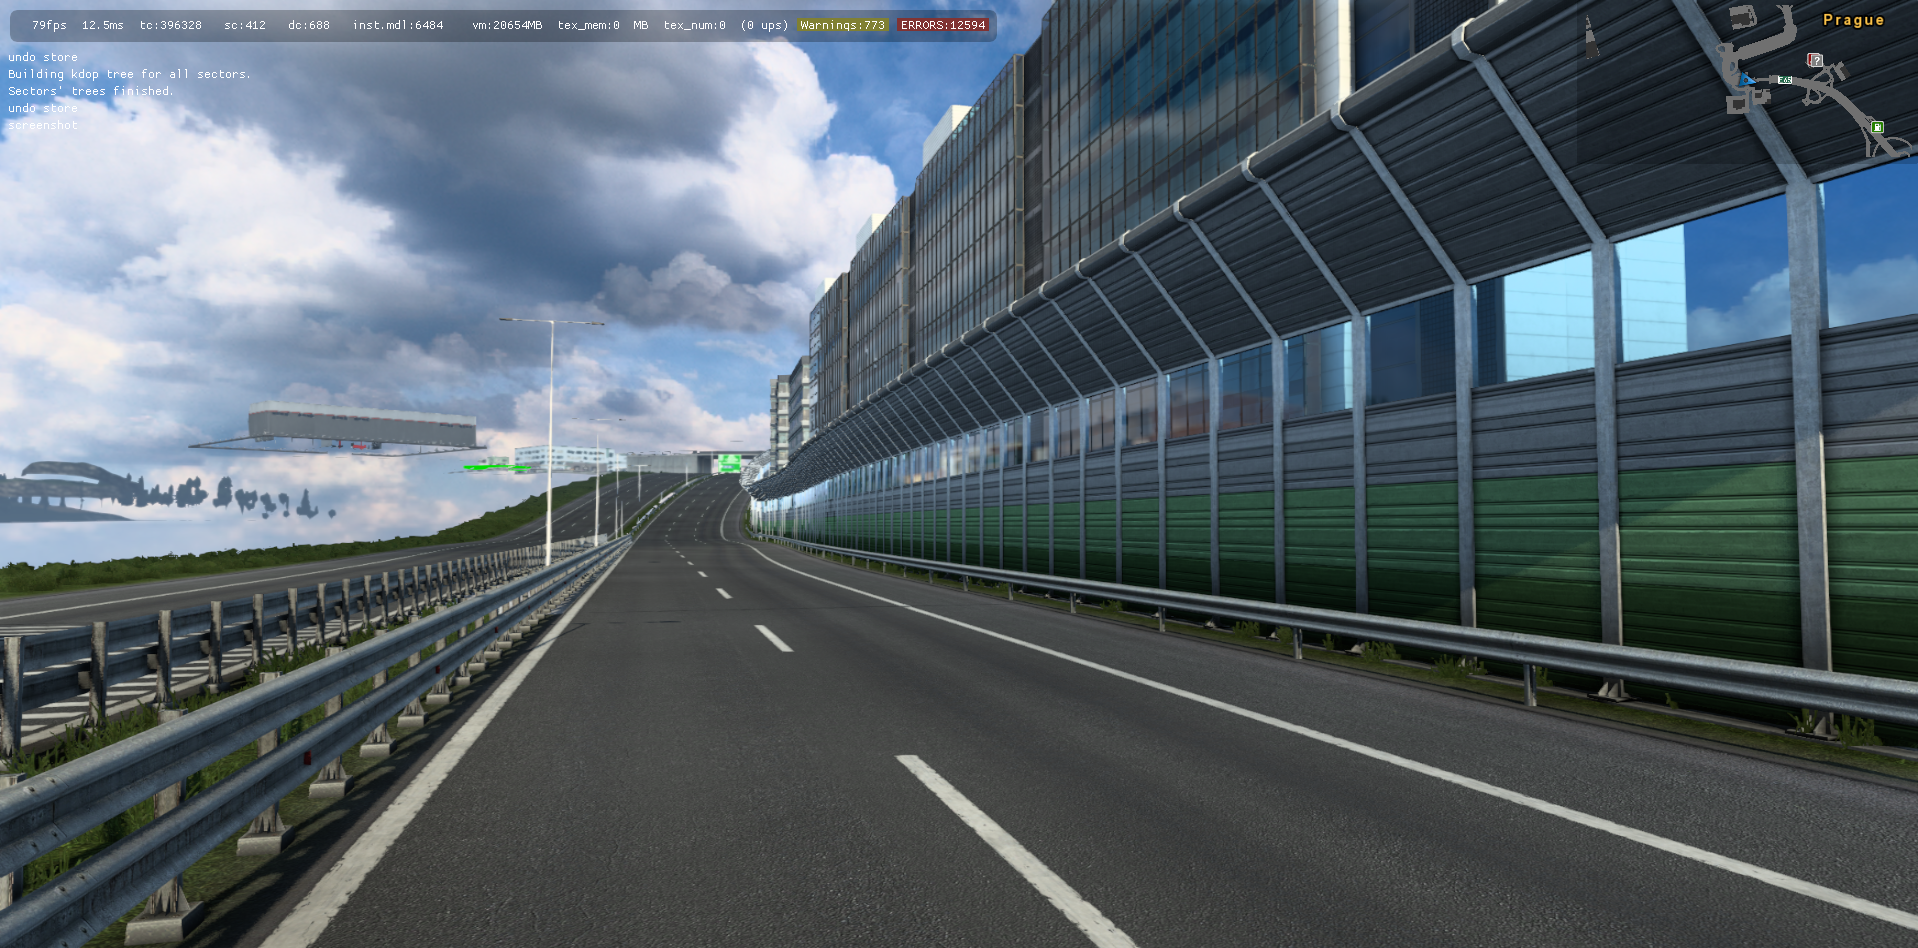 ets2_20210508_143711_00.png